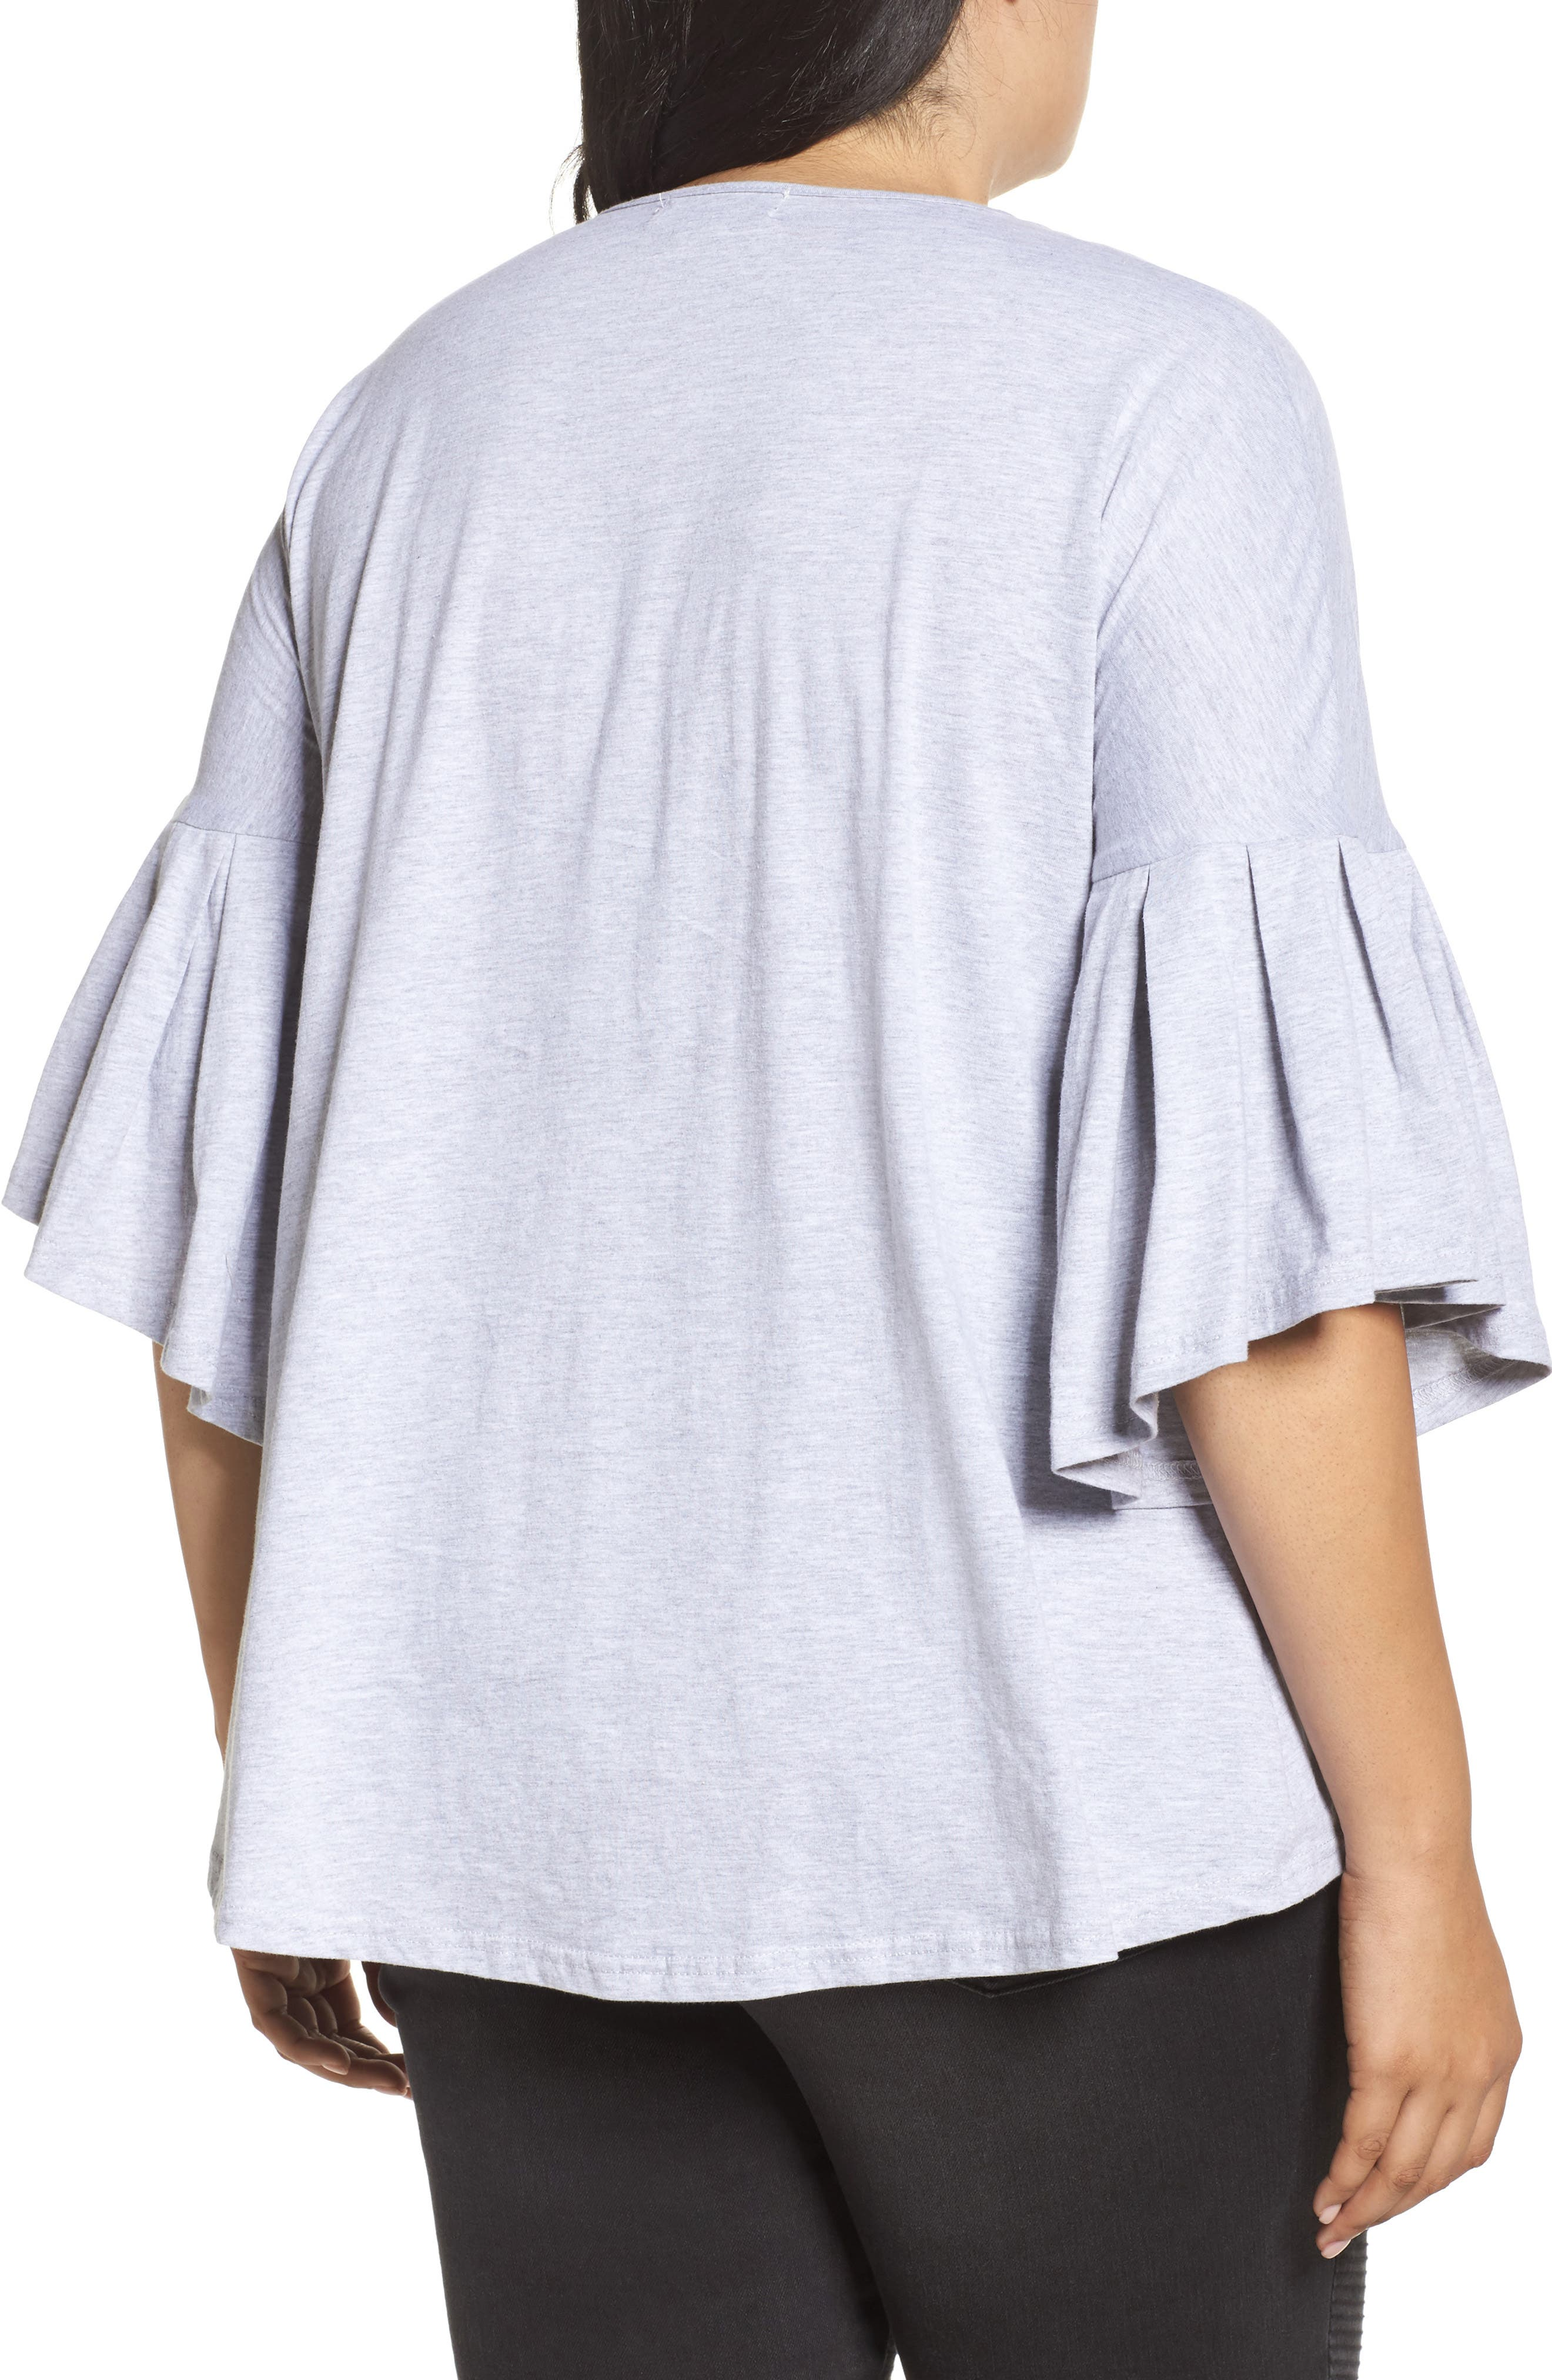 Bell Sleeve Cotton Blouse,                             Alternate thumbnail 2, color,                             021